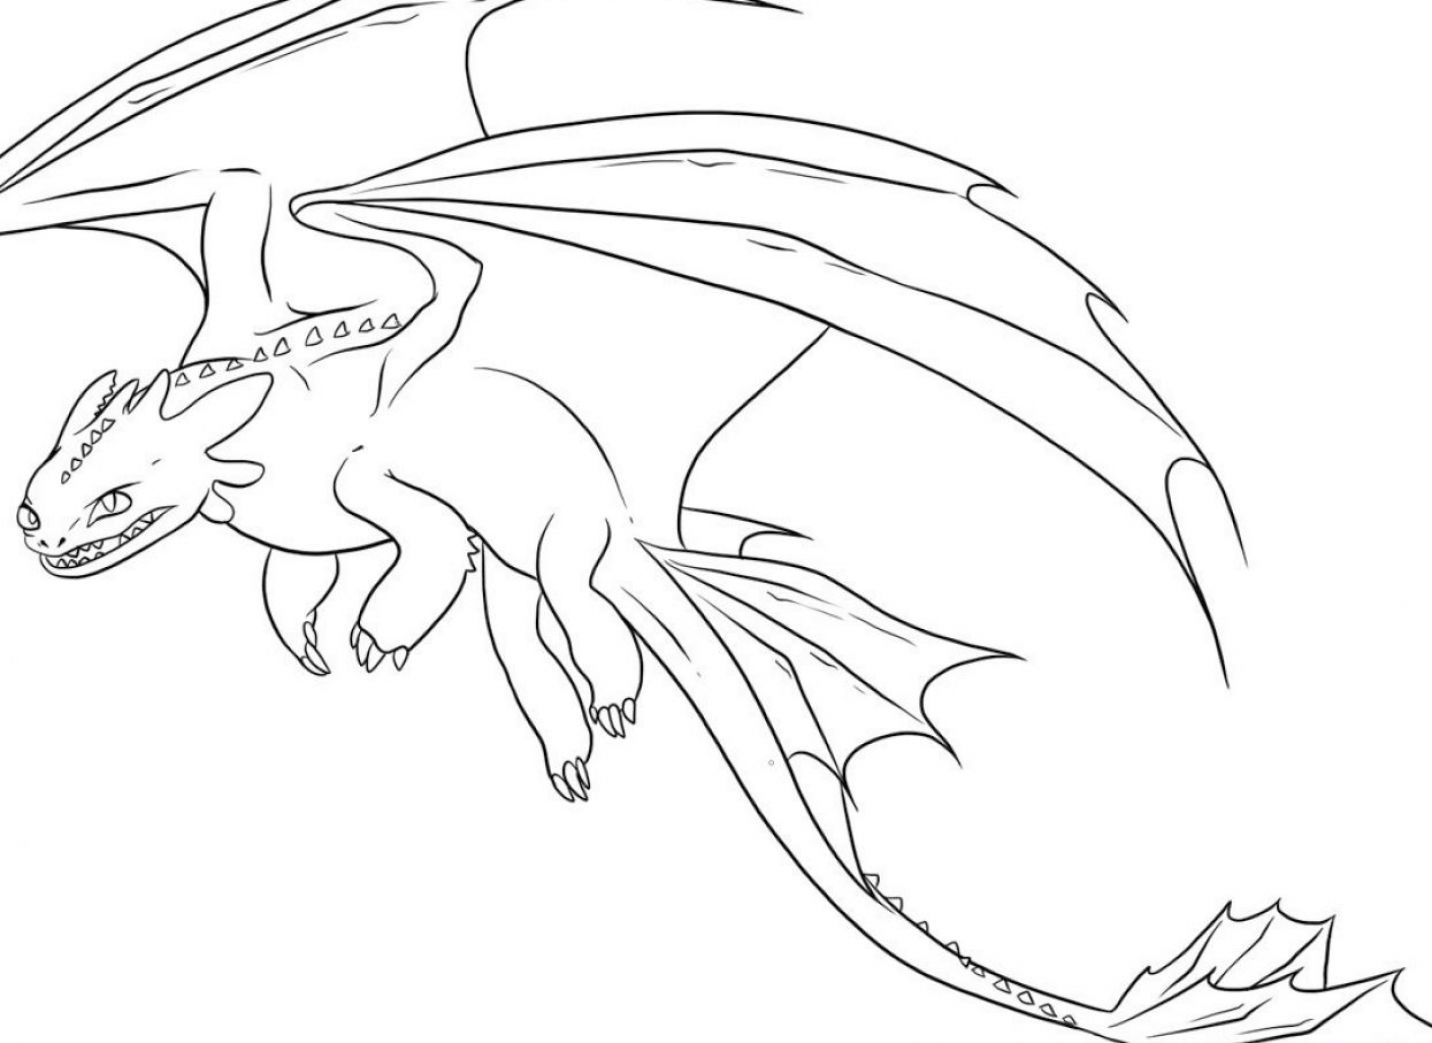 Cute Coloring Pages For Teenagers Graffiti 3265 Coloring Pages